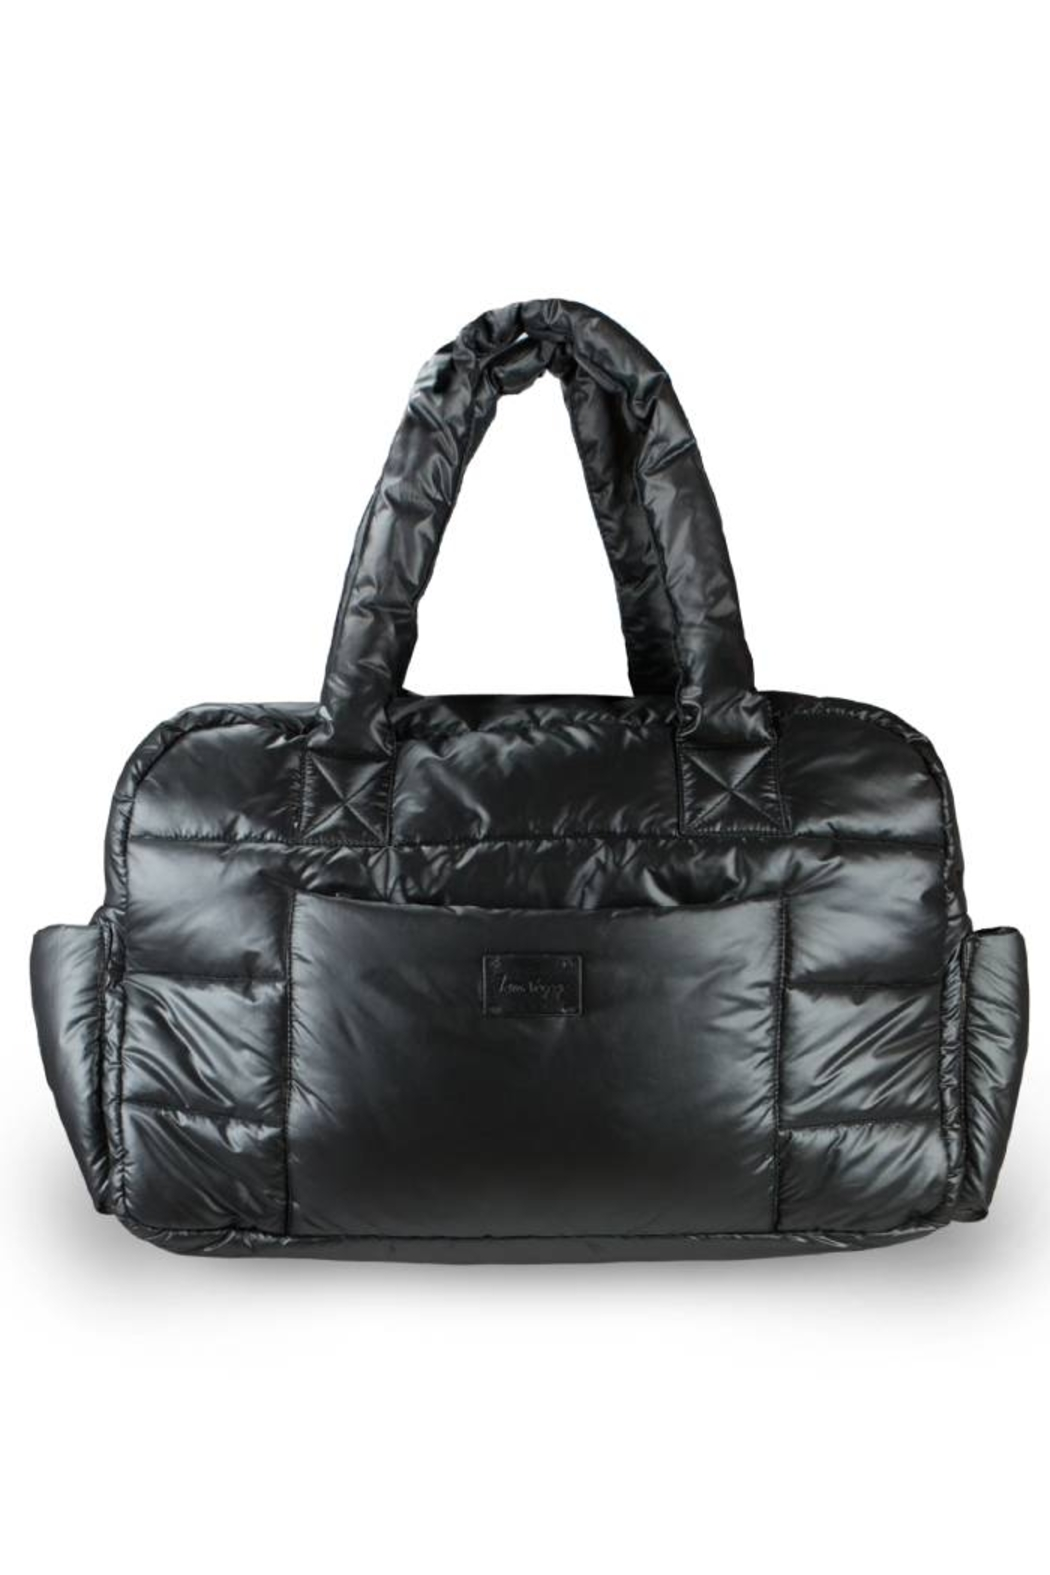 7AM Enfant 7 AM Enfant Premium Soho Satchel Diaper Bag for Fashionable Mothers - Main Image